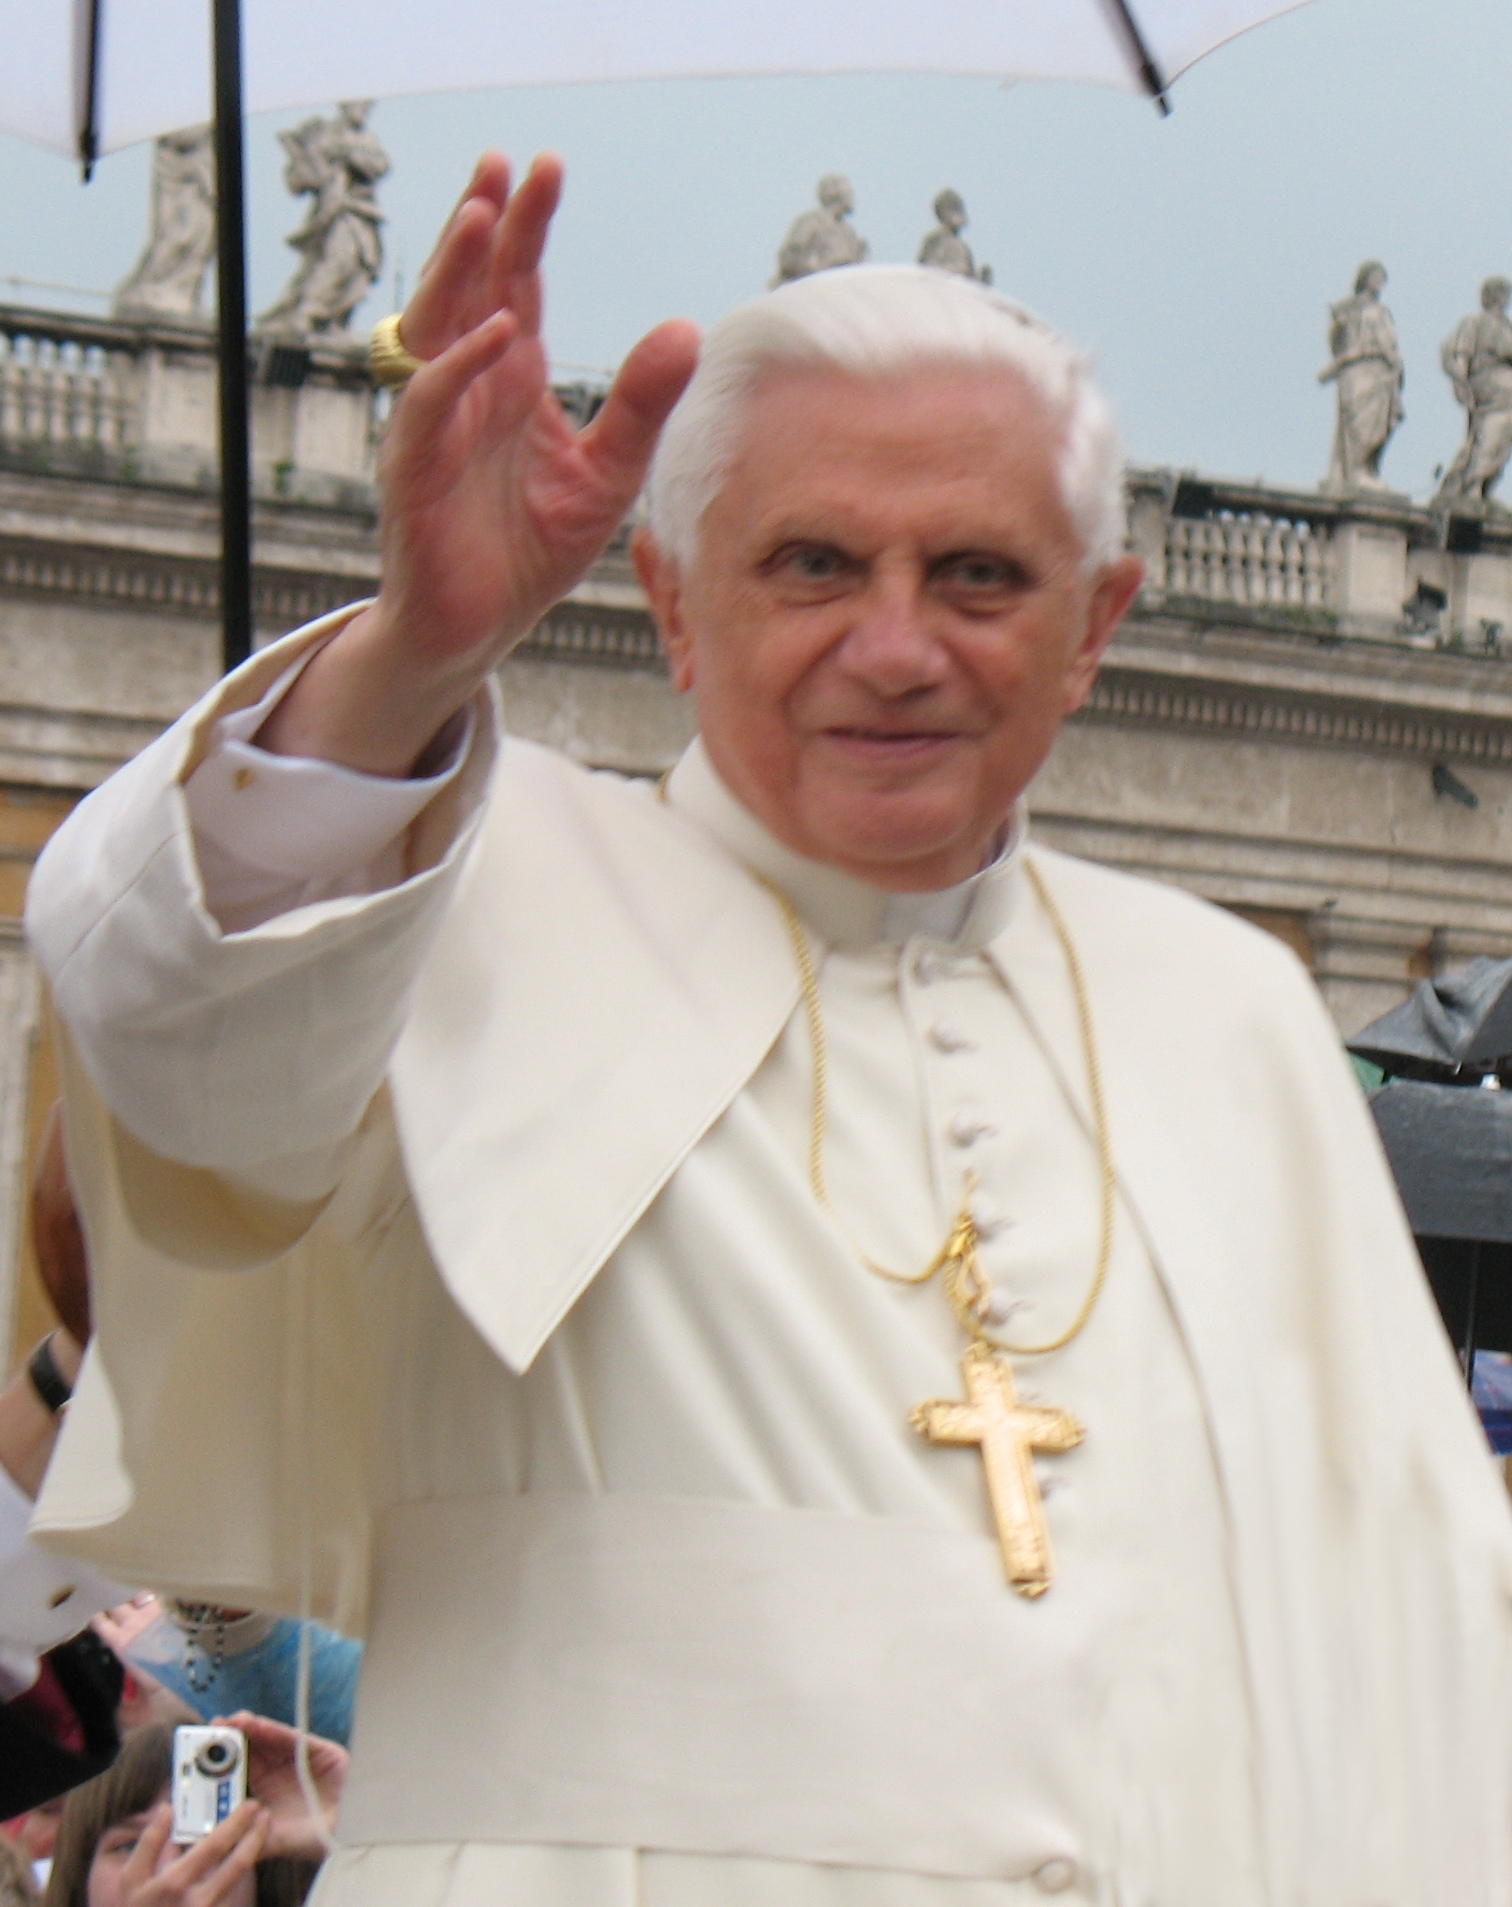 English: Pope Benedict XVI during general audition